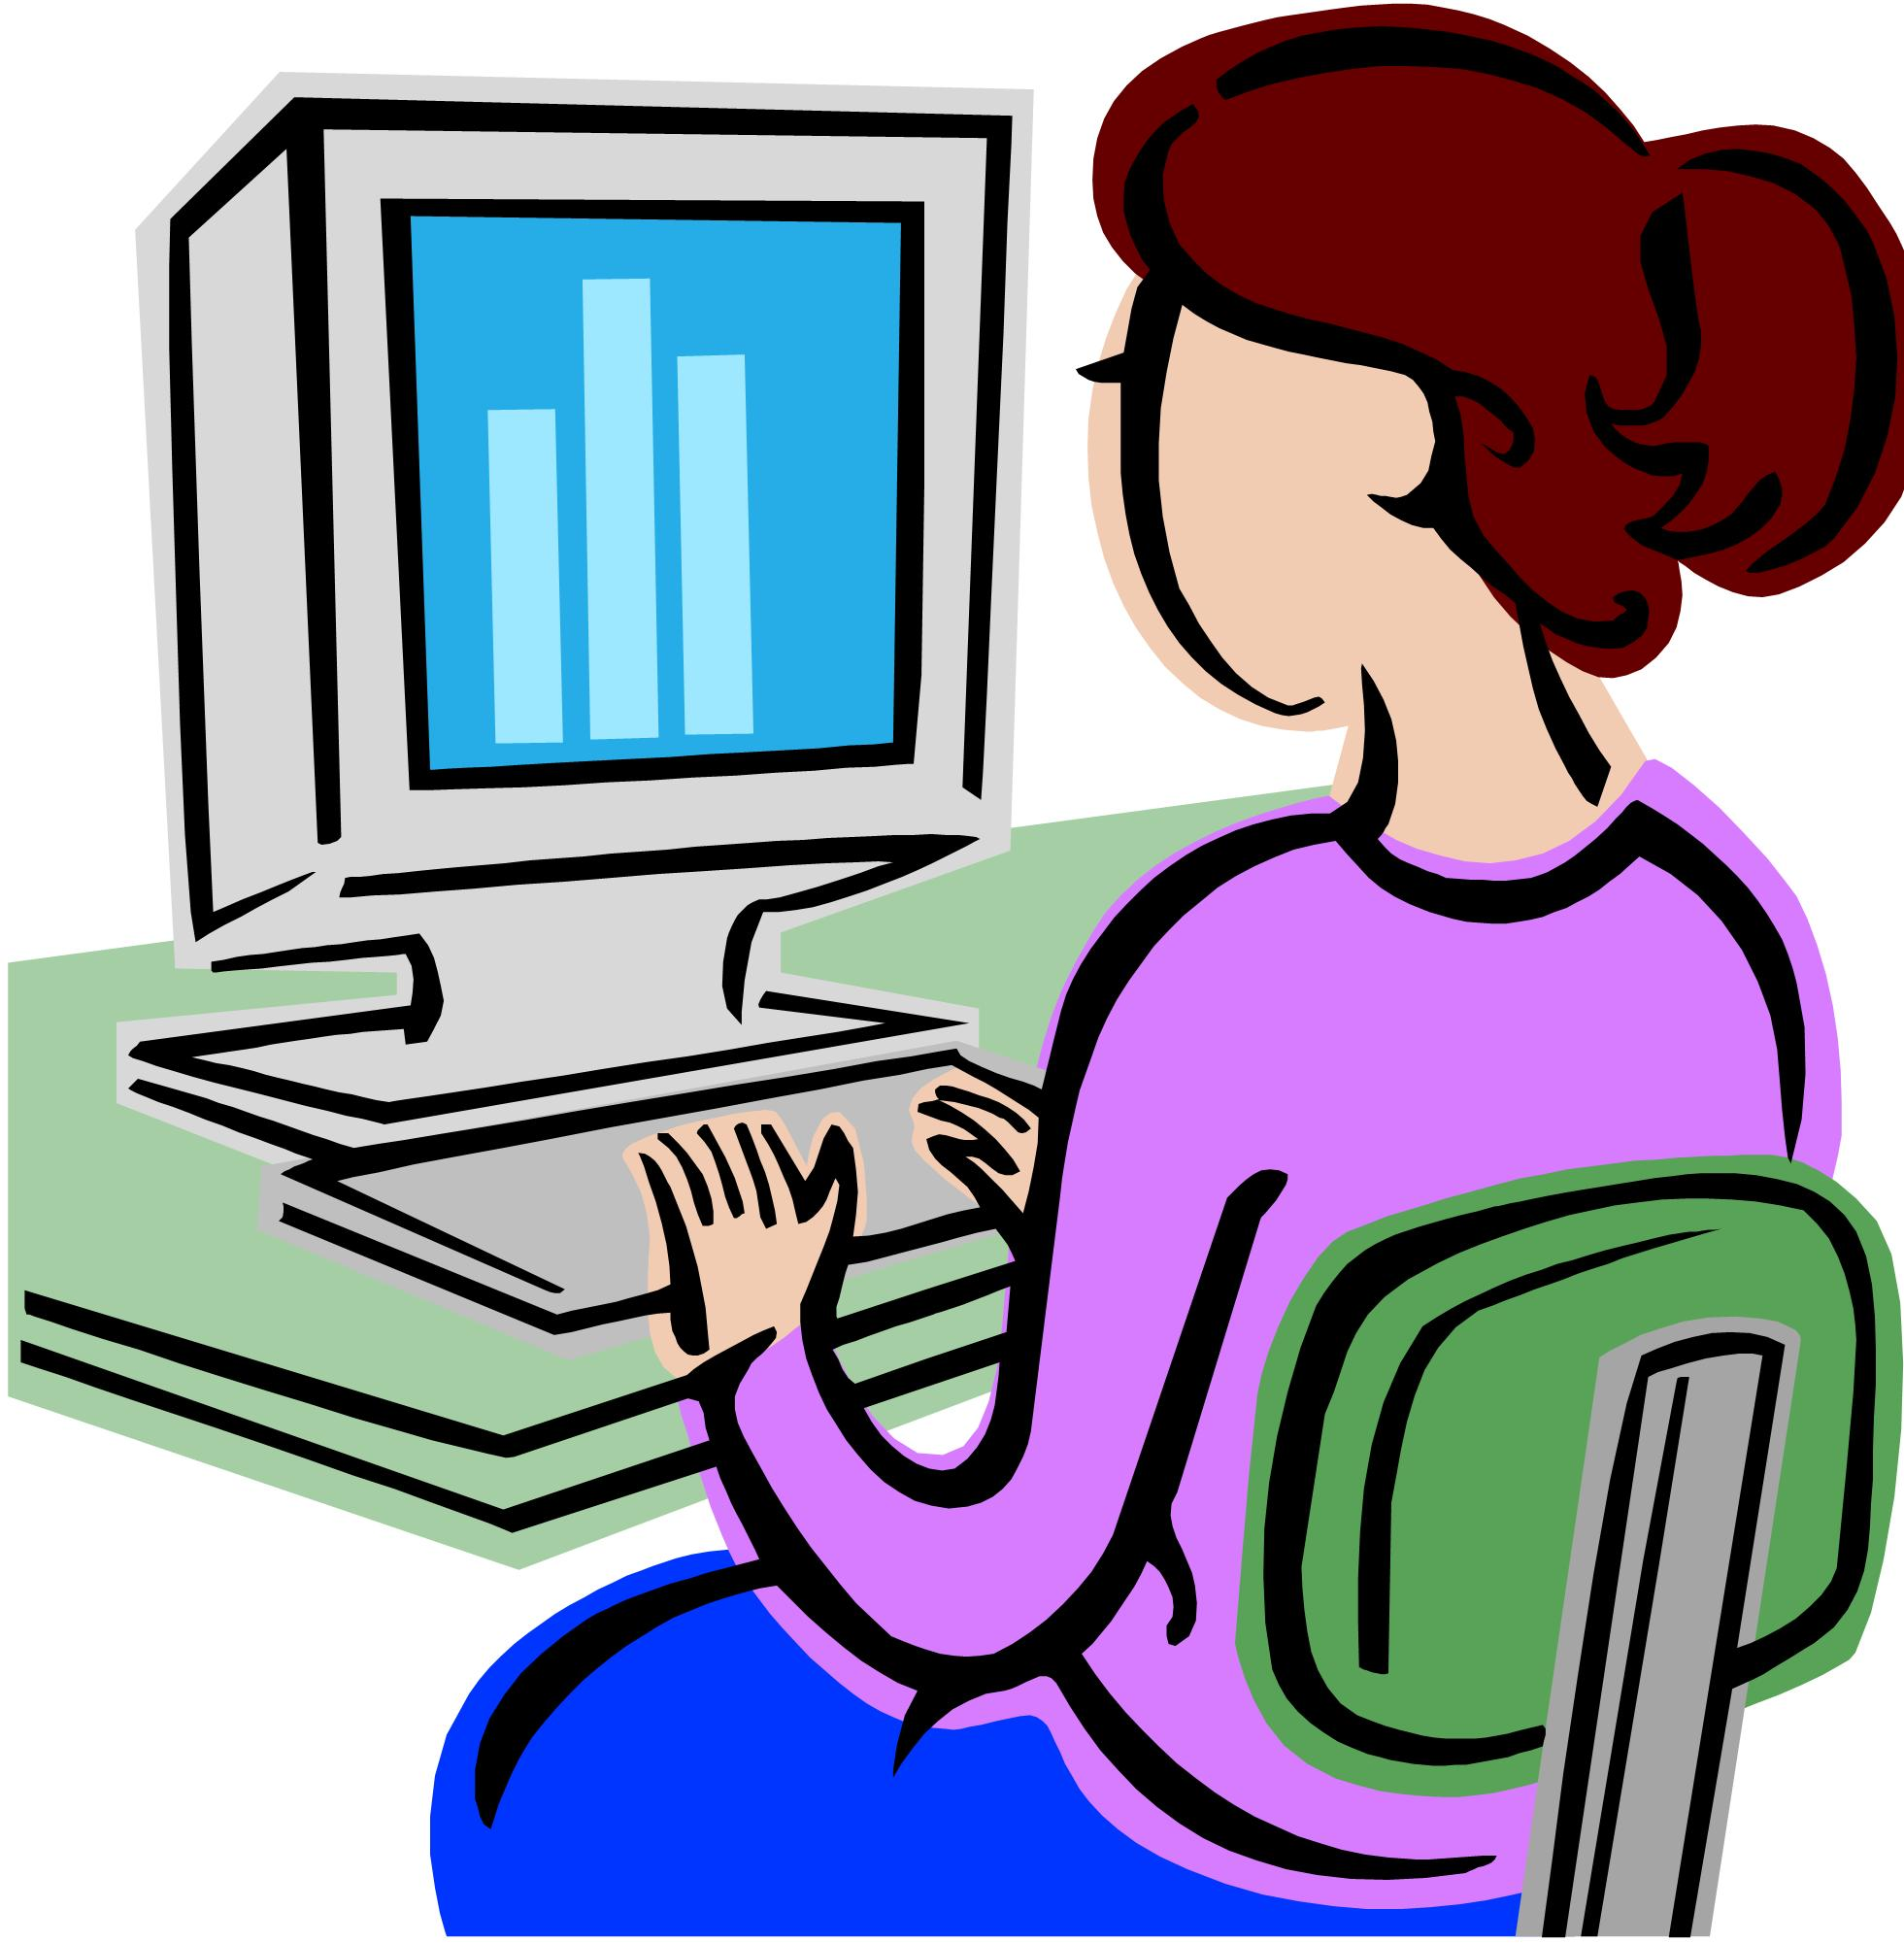 Lady On Computer Clipart - Computer Clipart Images